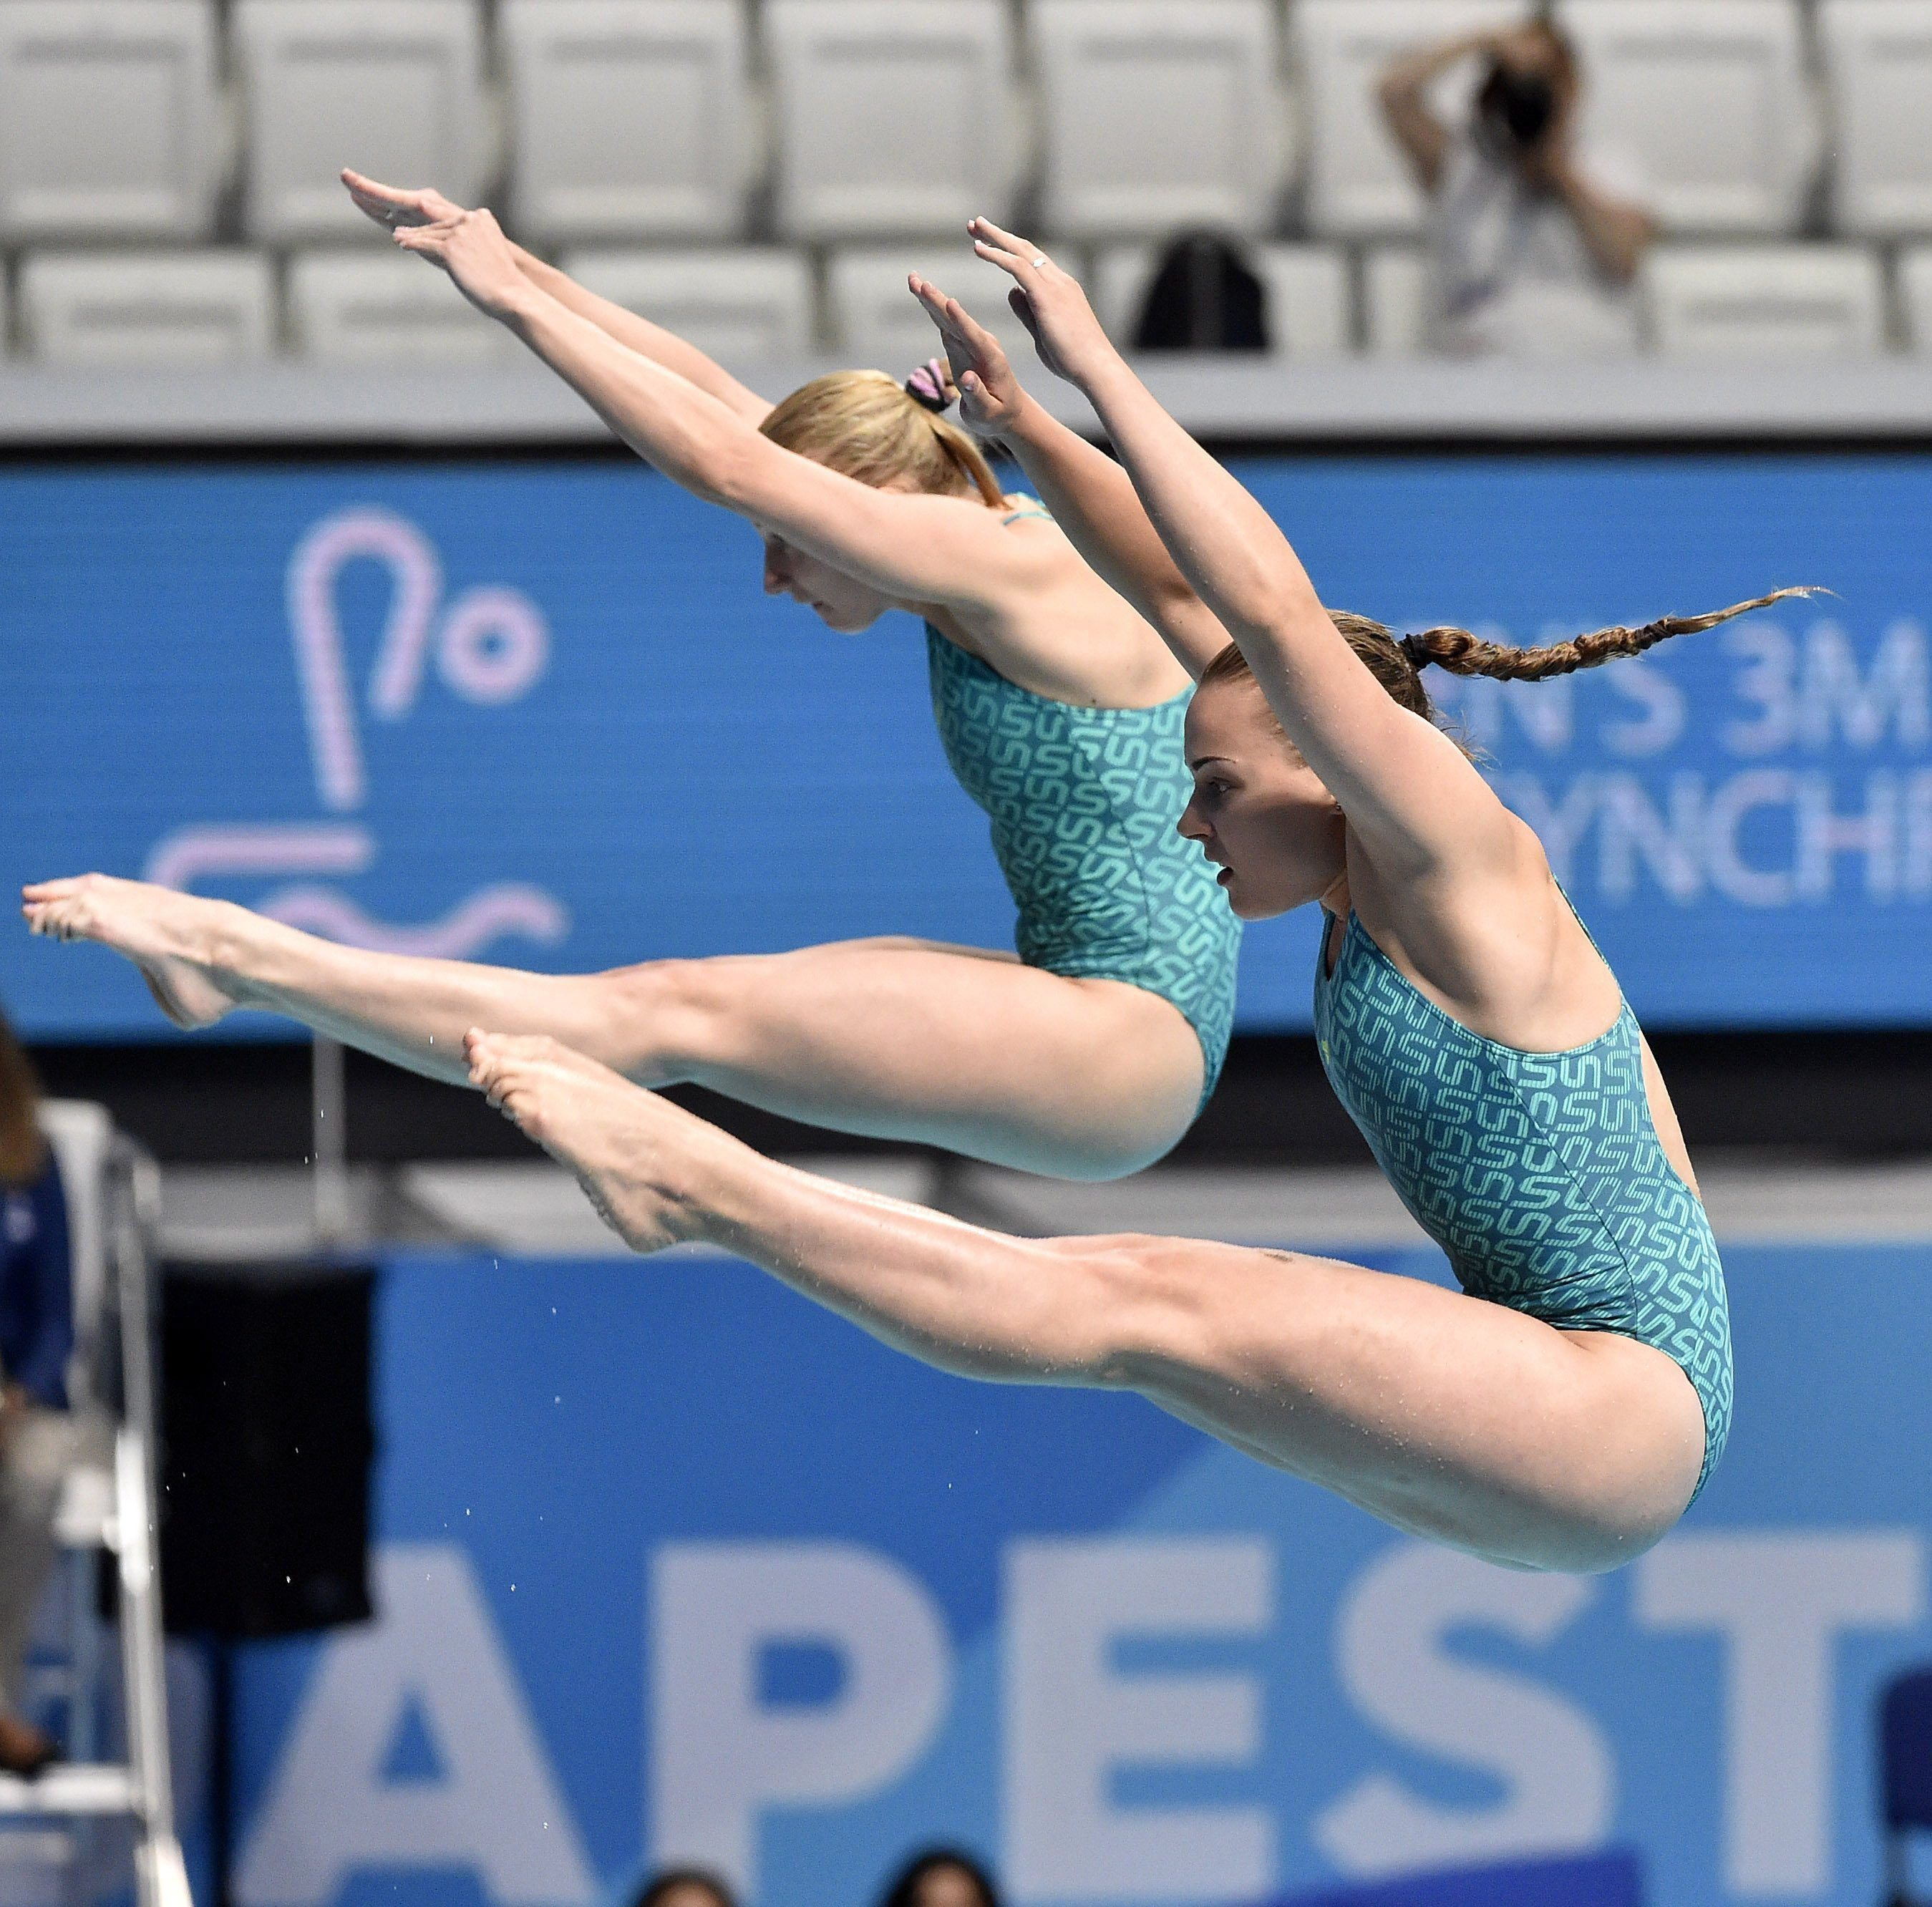 Anastasiia Nedobiga and Diana Shelestyuk of Ukraine compete in the women's 3m synchro springboard final of the 17th FINA Swimming World Championships in Duna Arena in Budapest, Hungary, Monday, July 17, 2017. (Zoltan Mathe/MTI via AP)